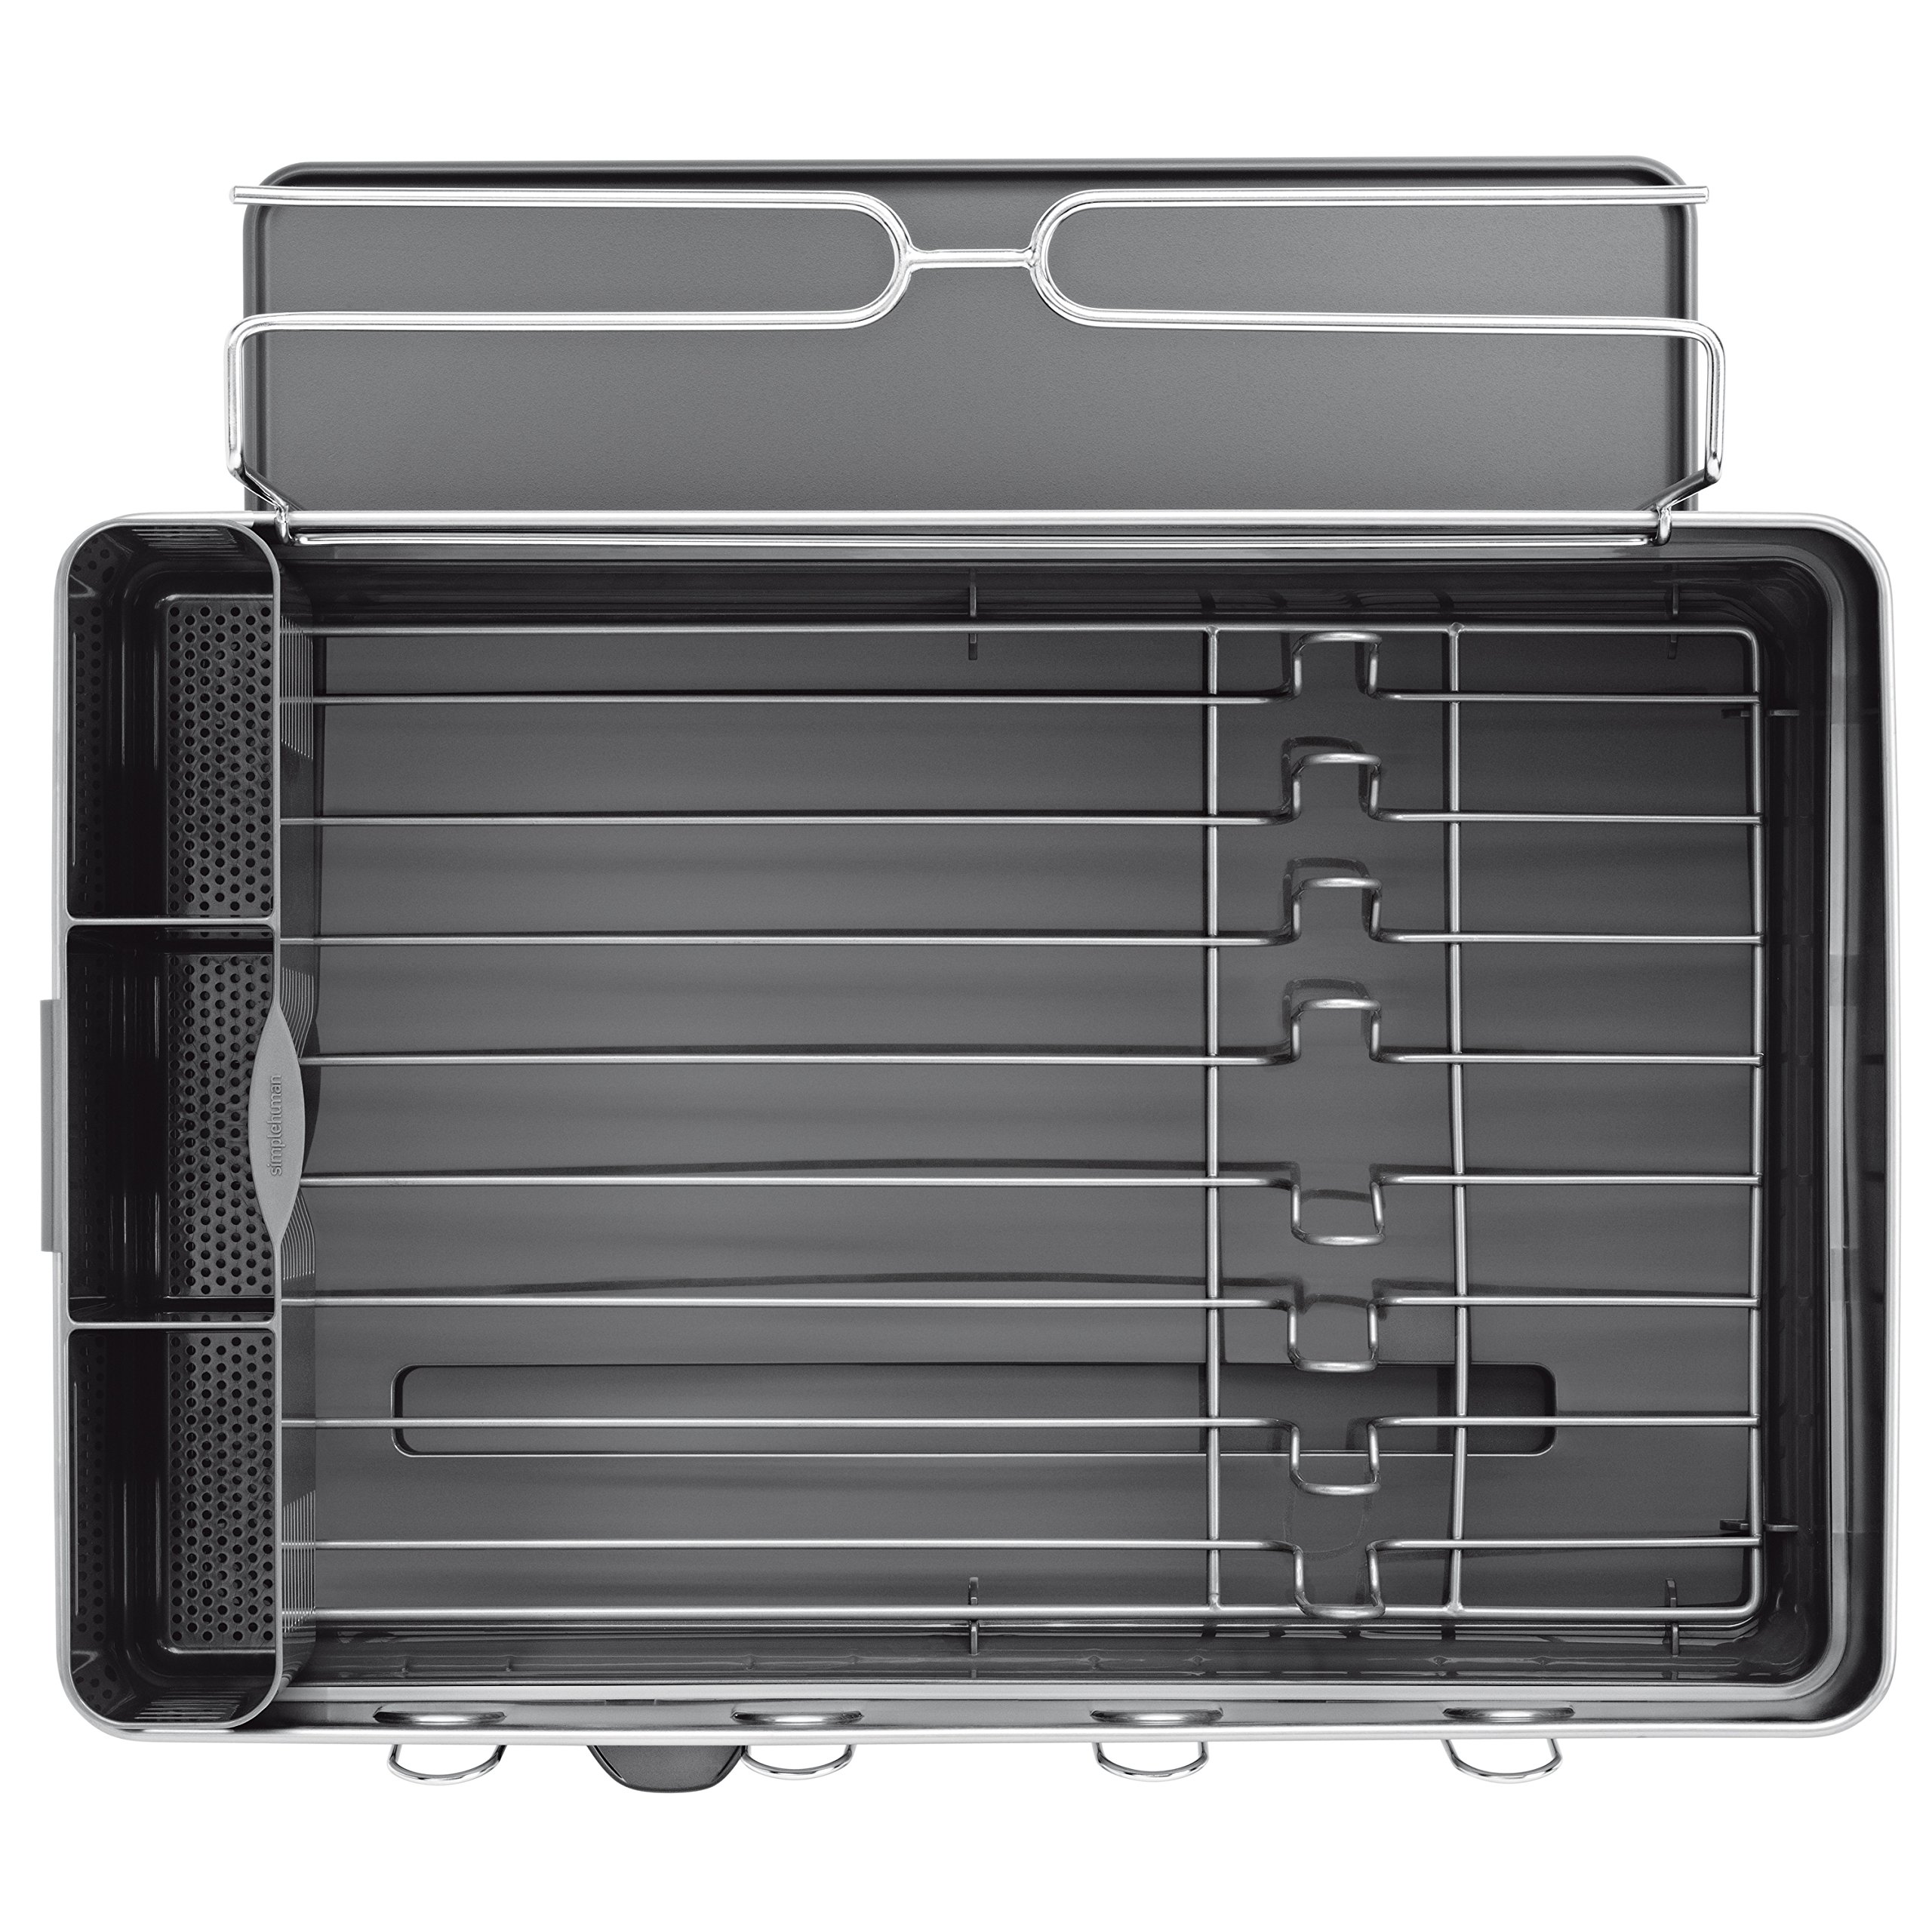 simplehuman Kitchen Steel Frame Dish Rack With Swivel Spout, Fingerprint-Proof Stainless Steel Frame, Grey Plastic by simplehuman (Image #5)